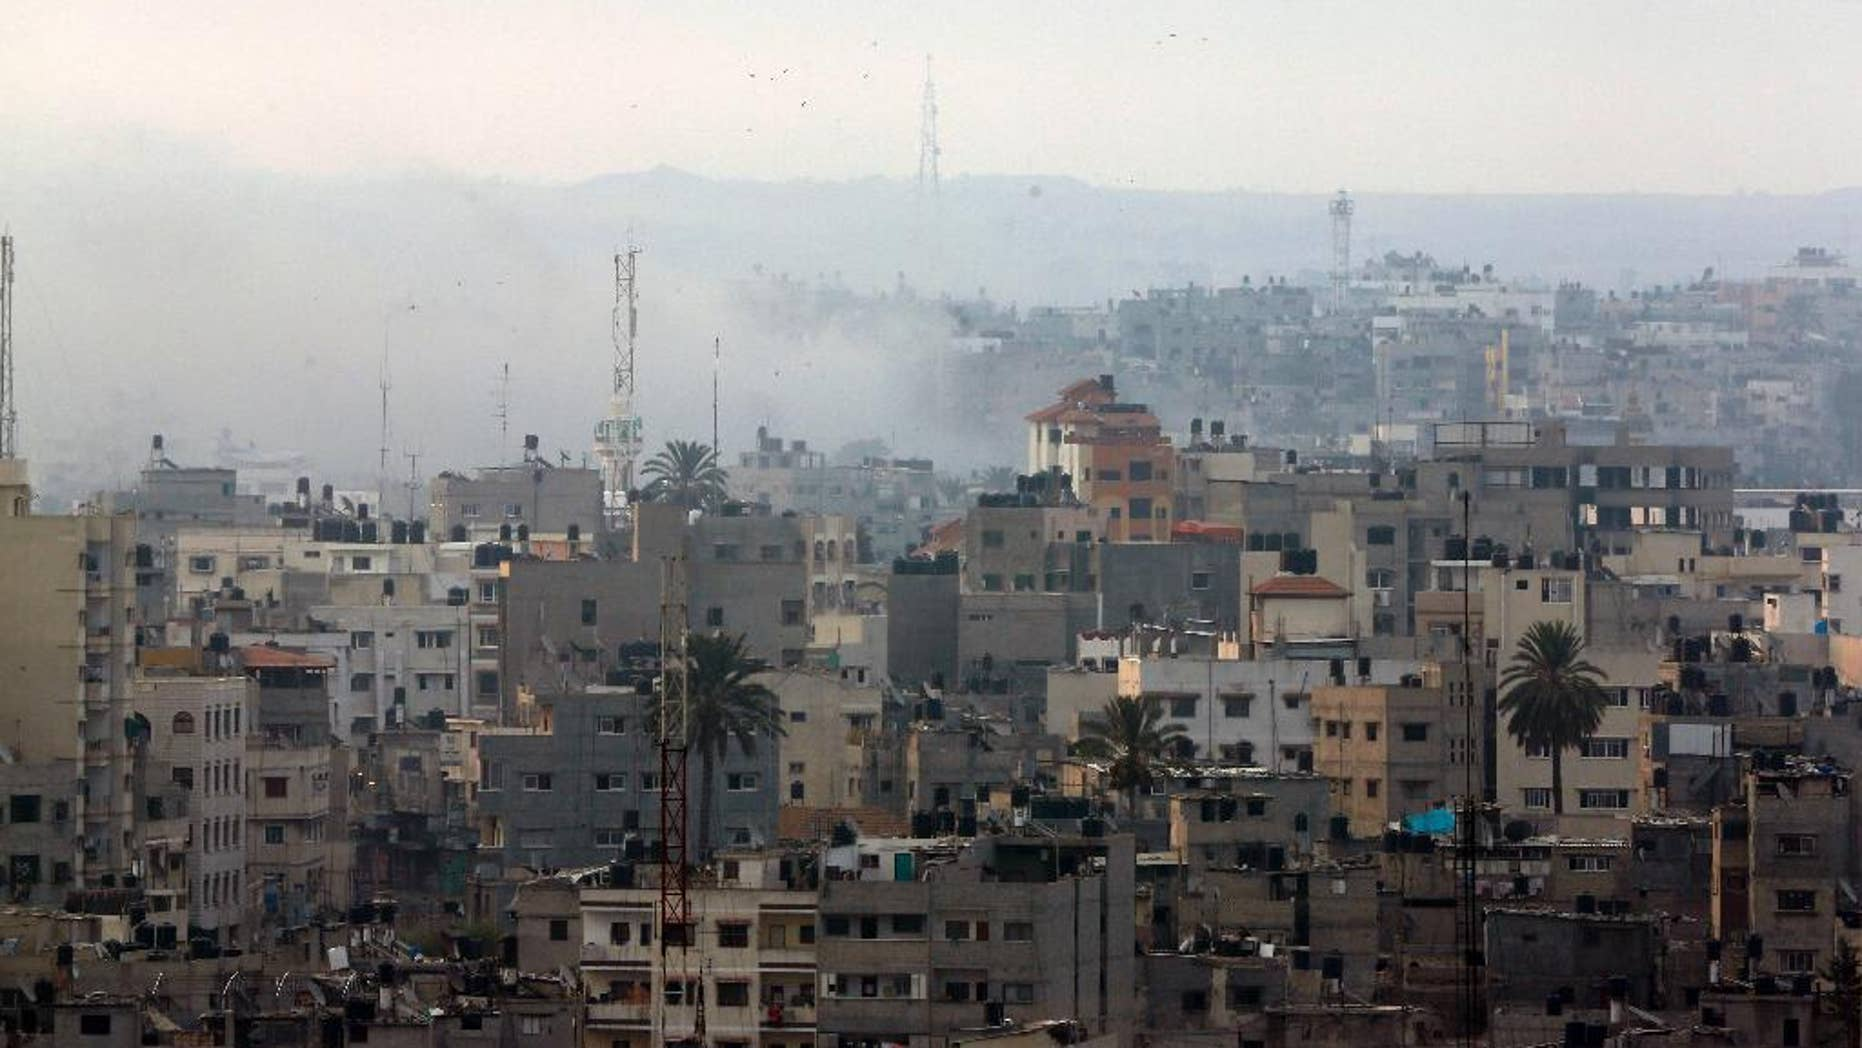 Smoke from Israeli strikes rises over Gaza City , northern Gaza Strip, Sunday, July 20, 2014. Israel said it widened its ground offensive early Sunday, sending more troops into Gaza after demolishing more than a dozen Hamas tunnels and intensifying tank fire on border areas. Since the start of Israel-Hamas fighting almost two weeks ago, over 300 Palestinians were killed and 2,700 wounded in Israeli air and artillery strikes, according to Palestinian health officials. One-fourth of the deaths were reported since the start of the ground offensive late Thursday, the officials said.(AP Photo/Lefteris Pitarakis)